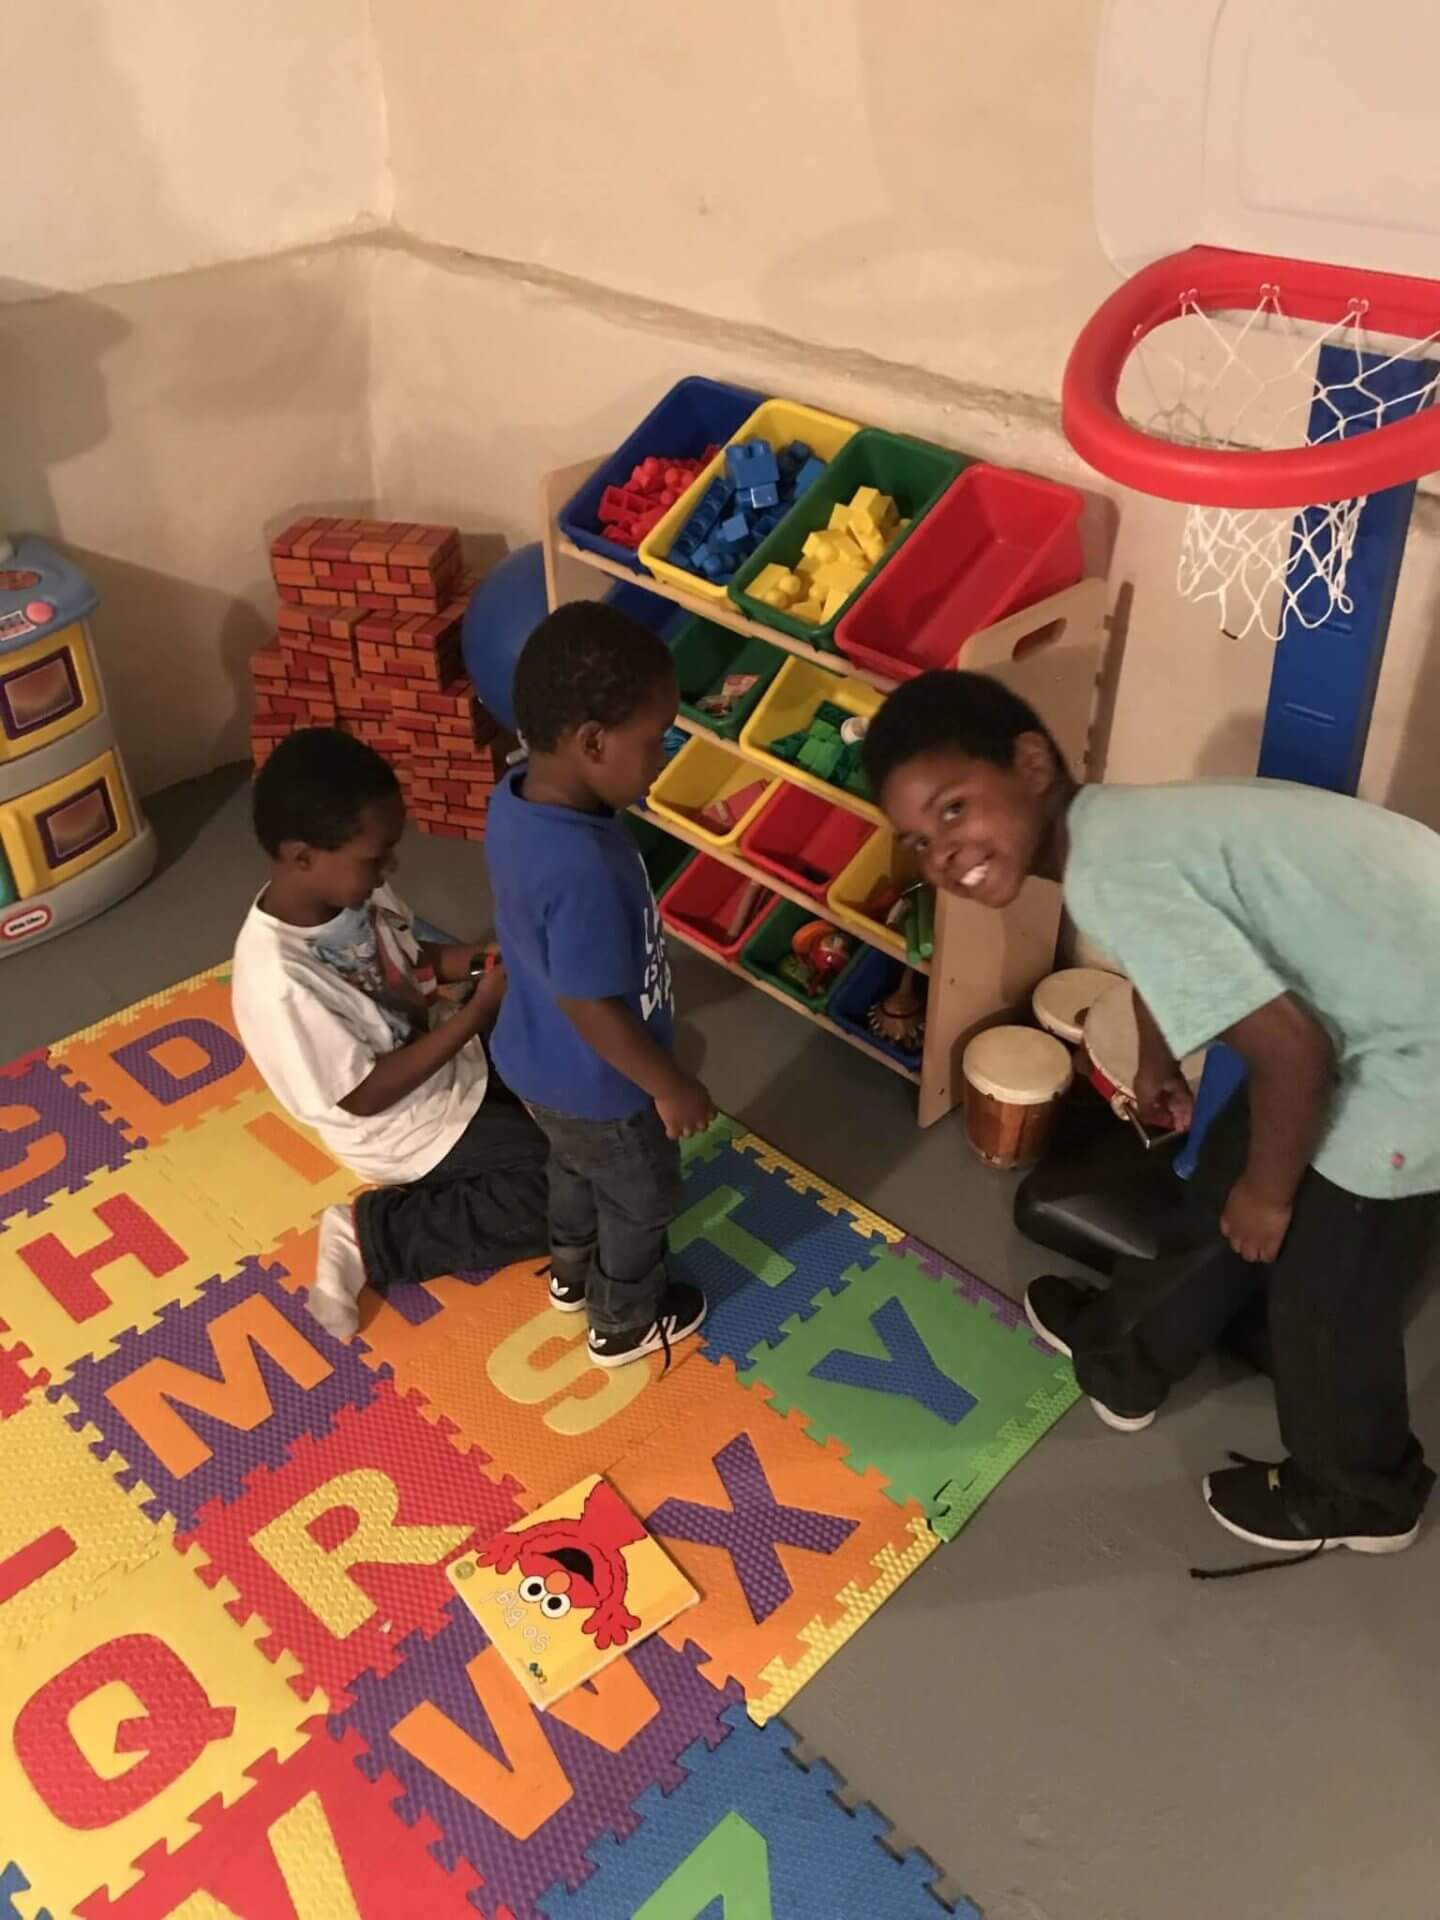 boys playing with toys in new play room